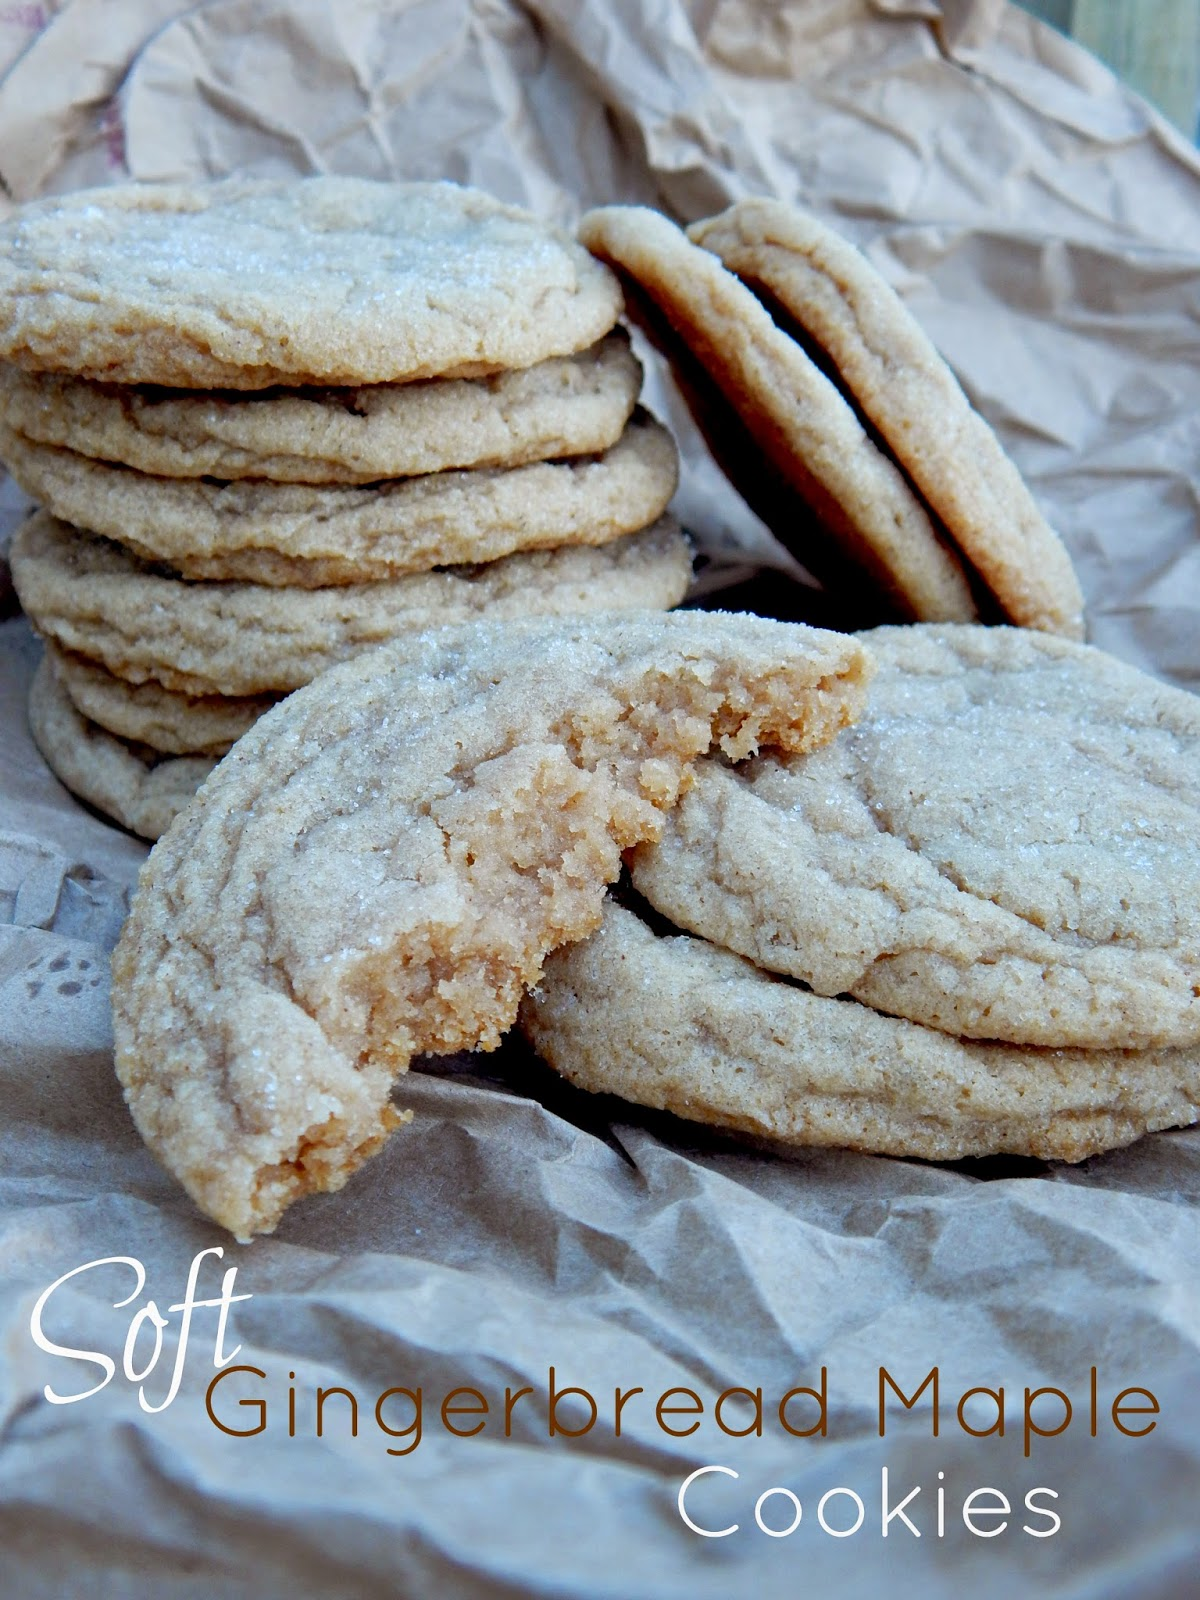 Ally S Sweet Savory Eats Soft Gingerbread Maple Cookies